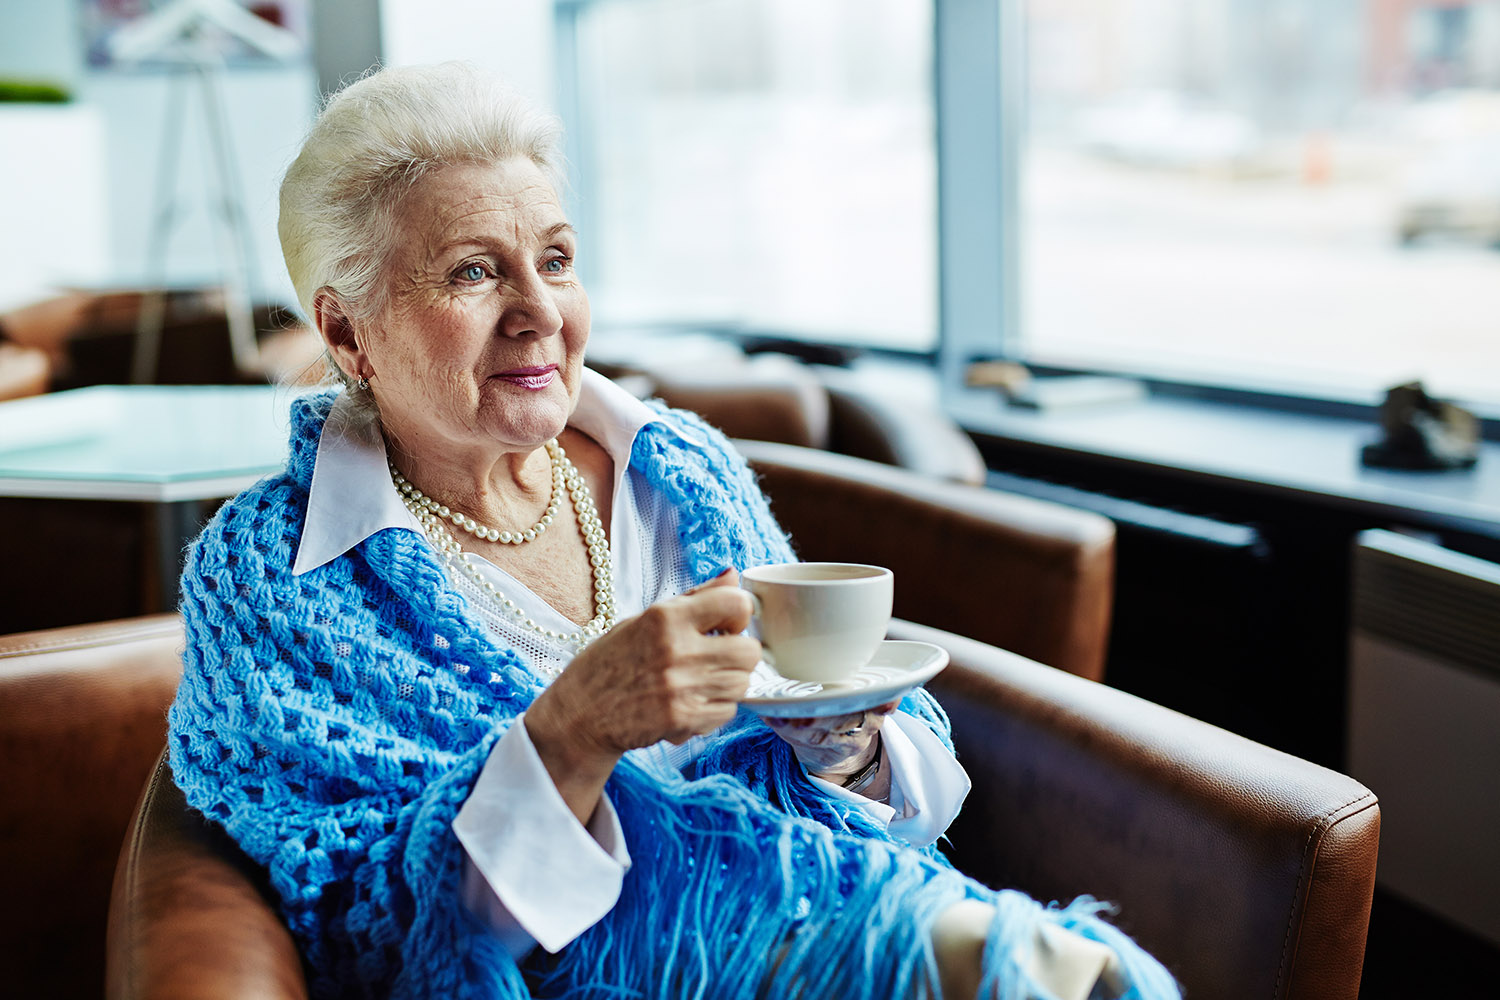 elder woman enjoying a nice warm cup of coffee